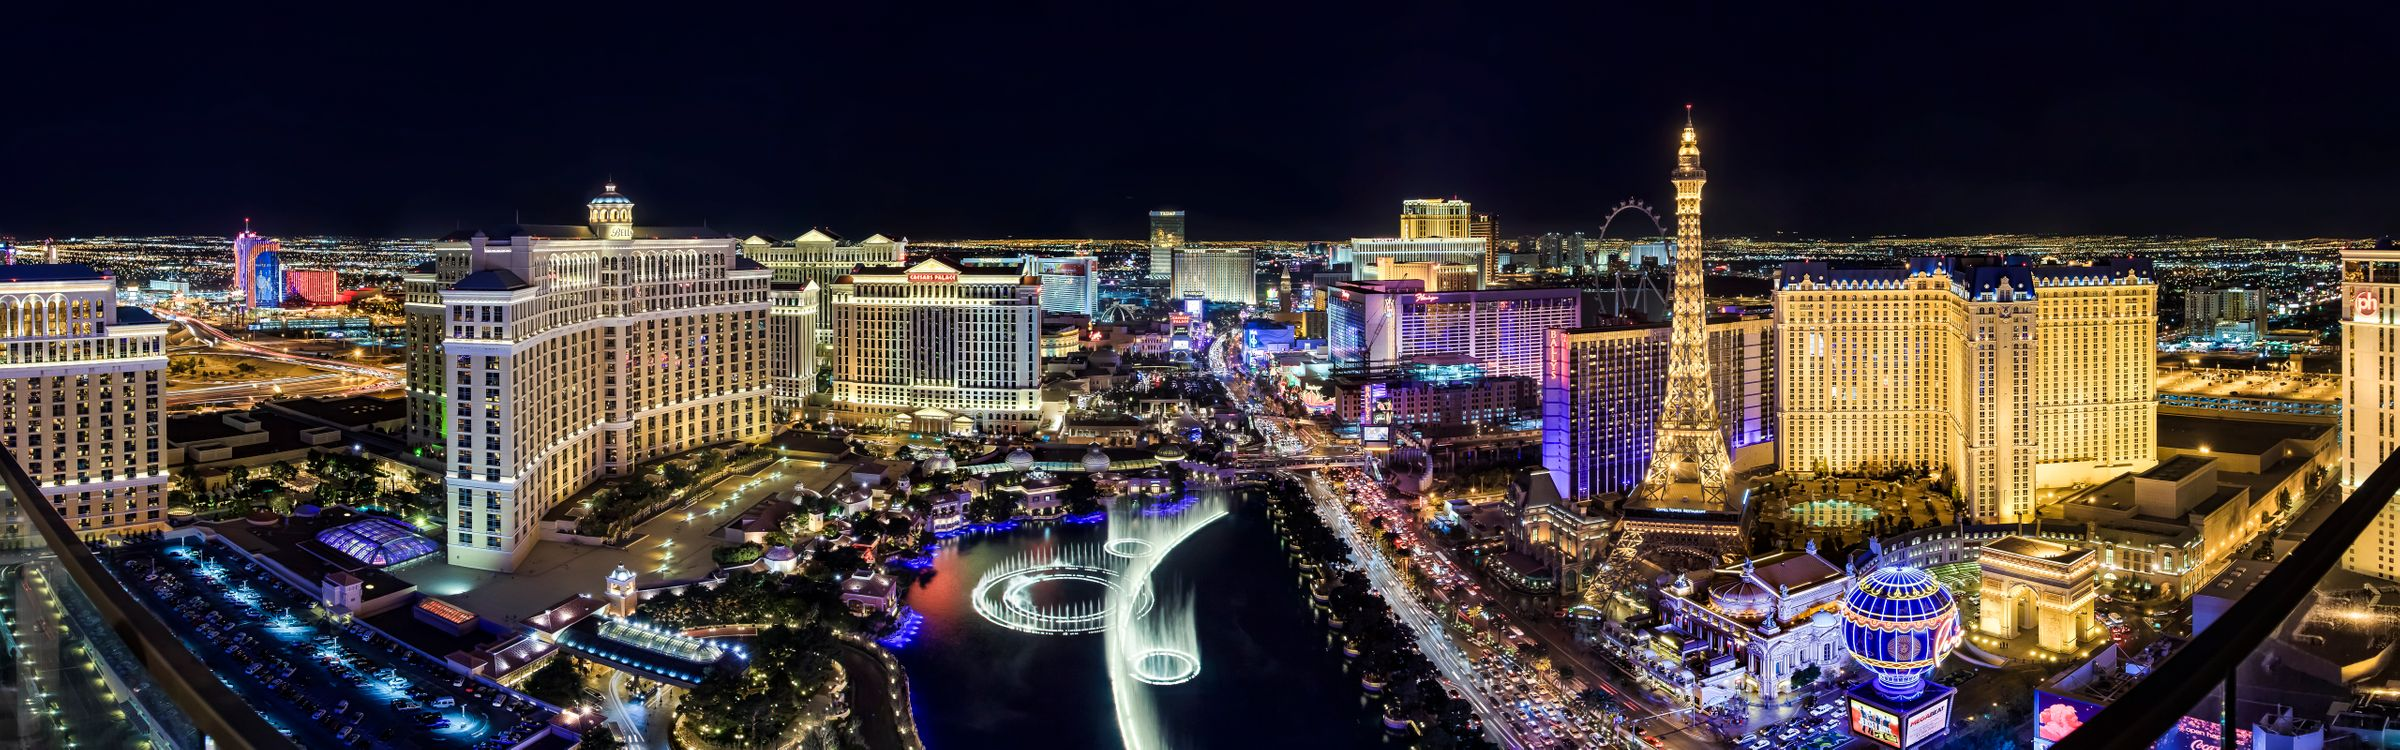 Free photo architecture, the lights of Las Vegas luxury hotel, blue hour - to desktop